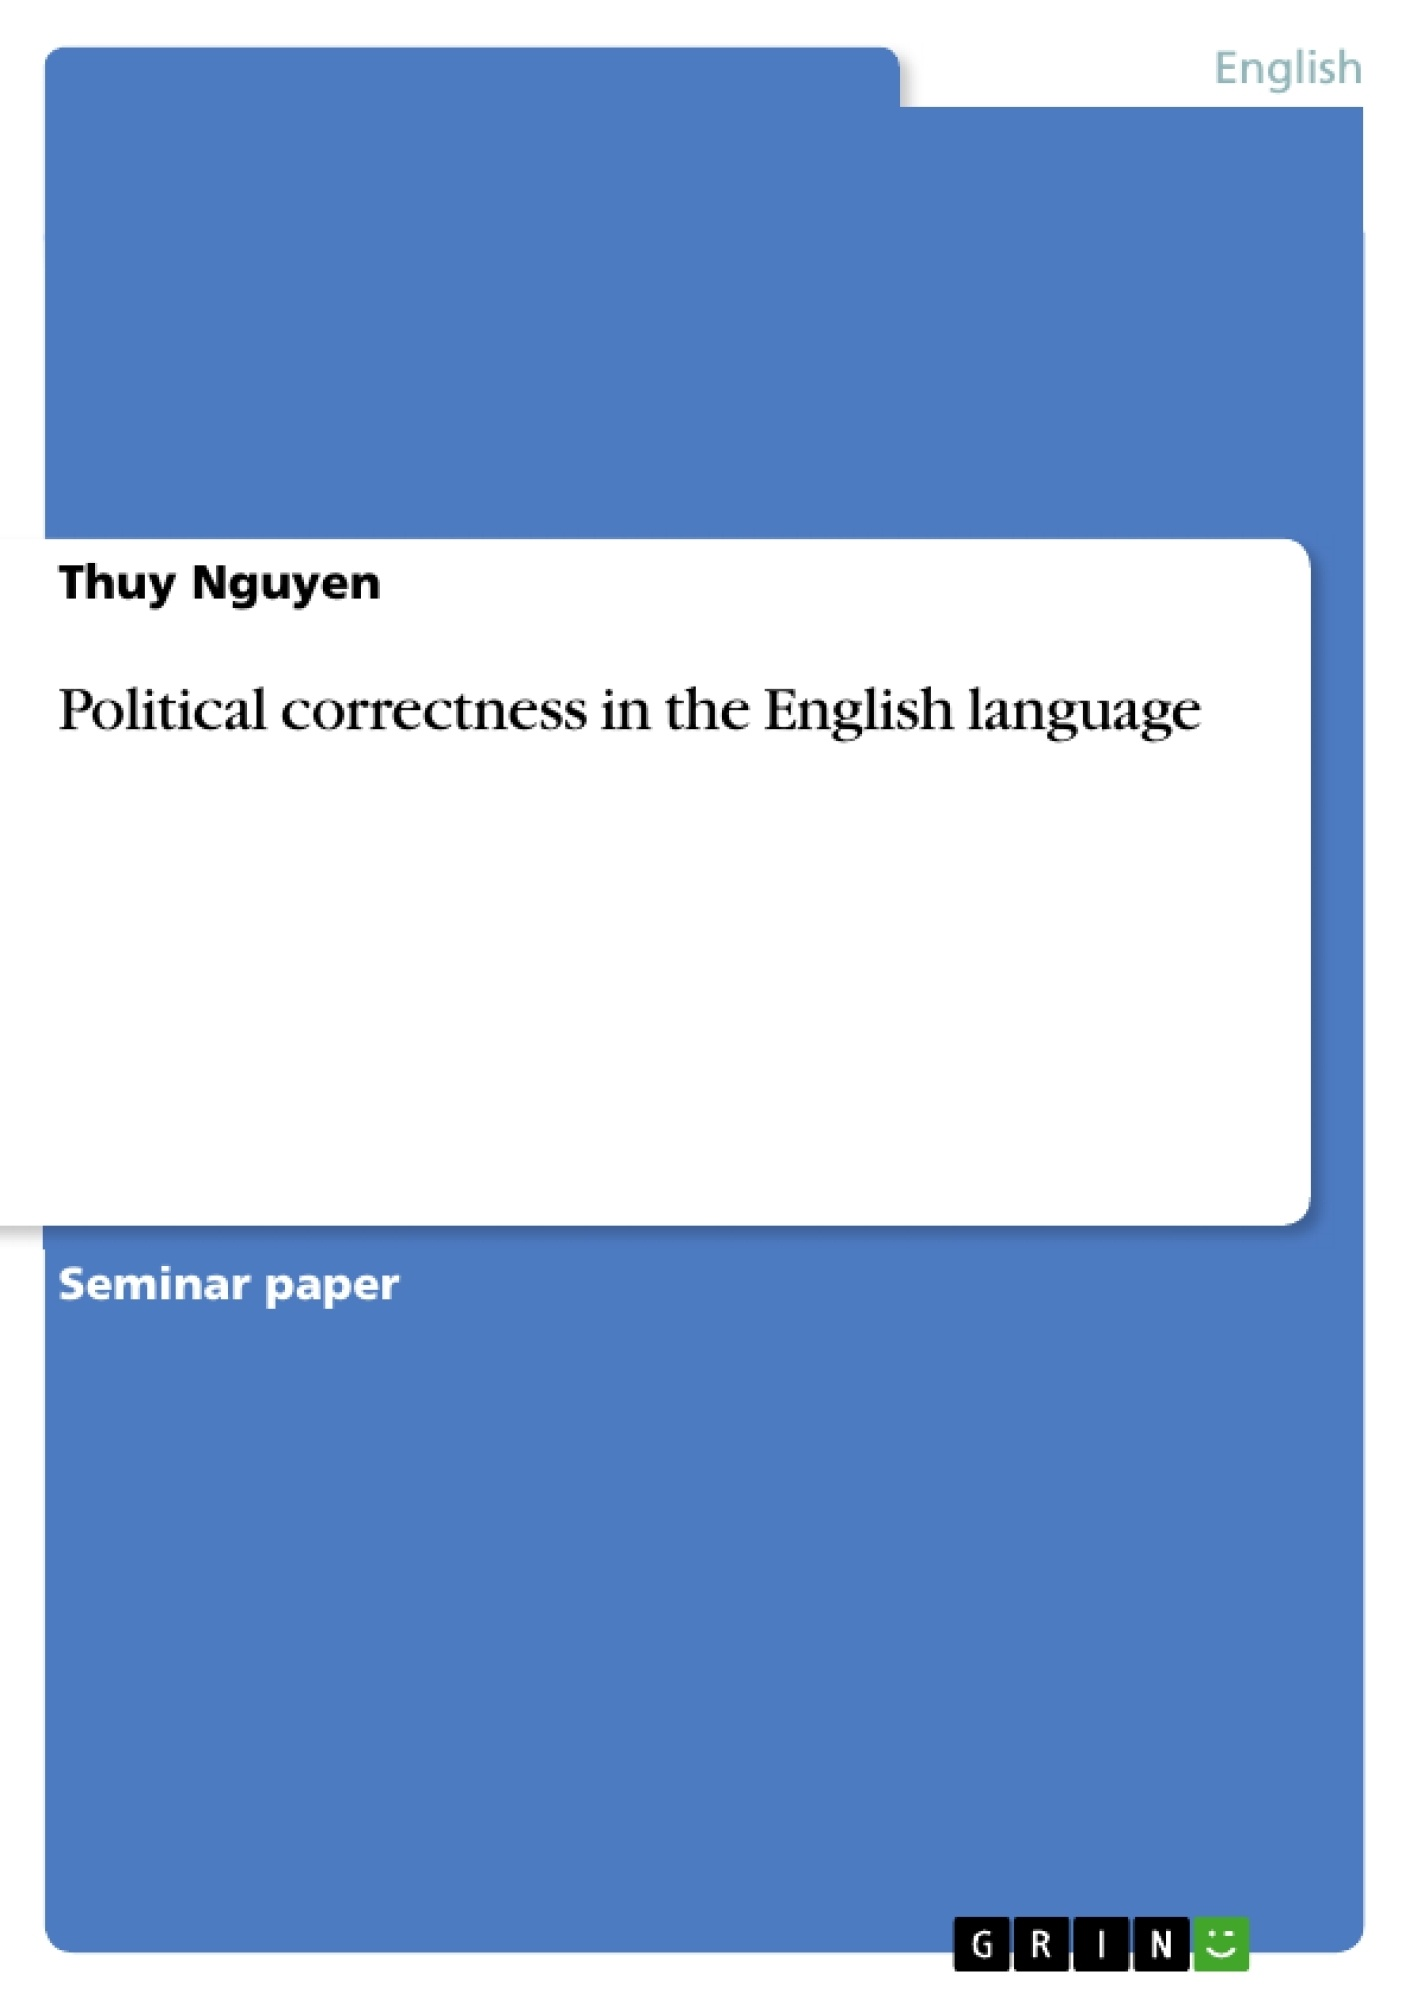 political correctness in the english language publish your political correctness in the english language publish your master s thesis bachelor s thesis essay or term paper